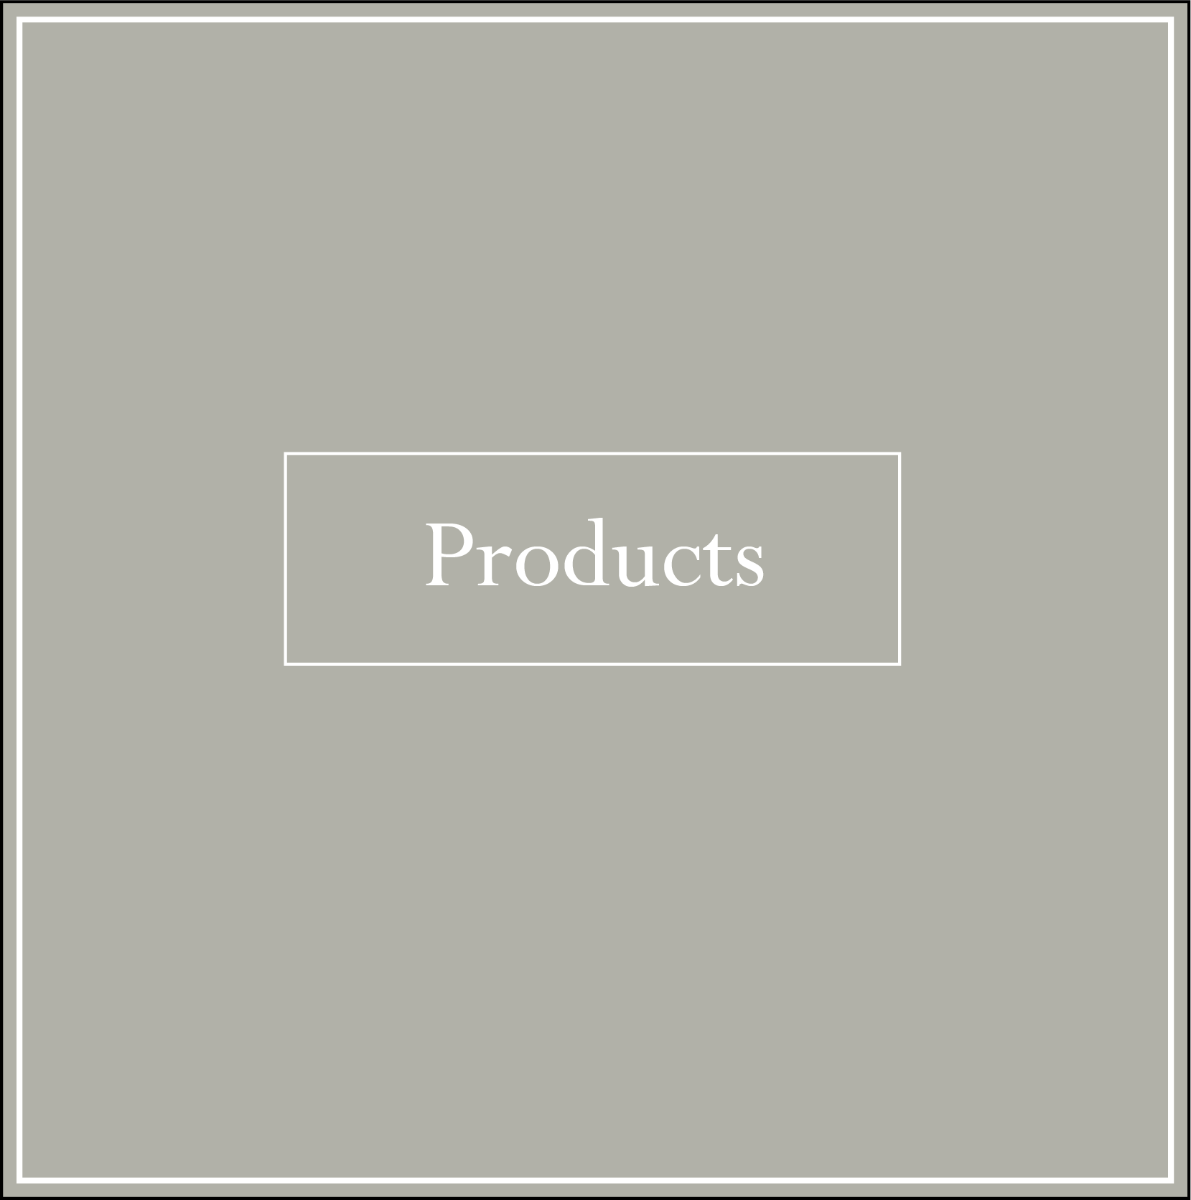 productsbox.png